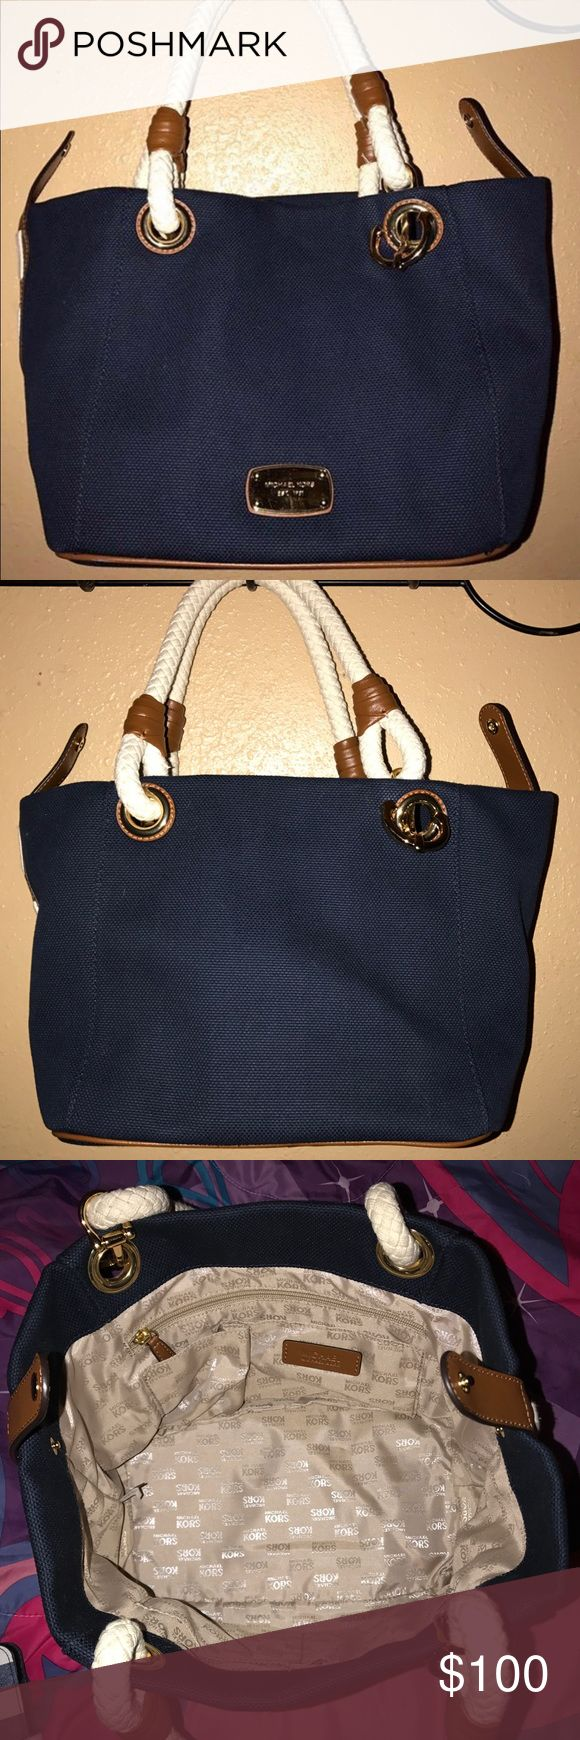 Michael Kors Marina Michael Kors Marina navy tote bag. New with tags! Michael Kors Bags Totes